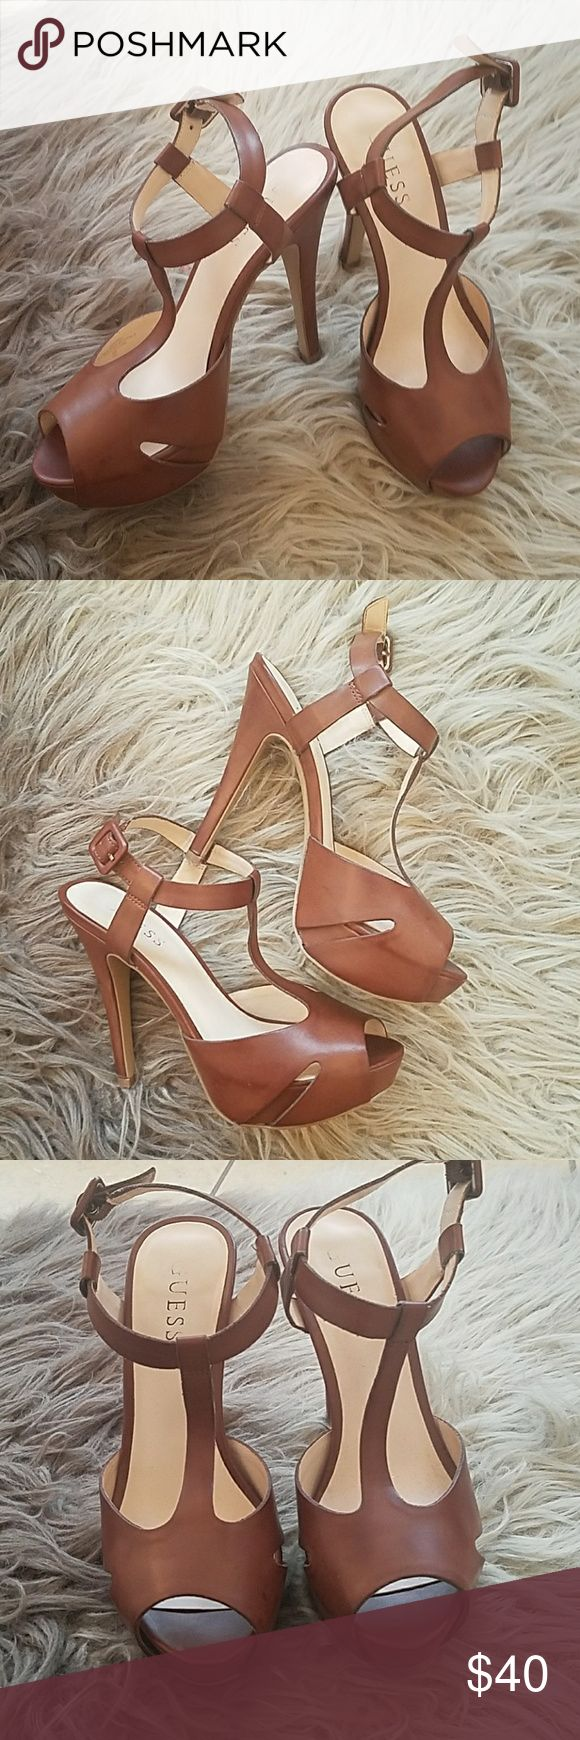 GUESS TAN HEELS Only wore one time.  Authentic and in excellent condition. Guess Shoes Heels